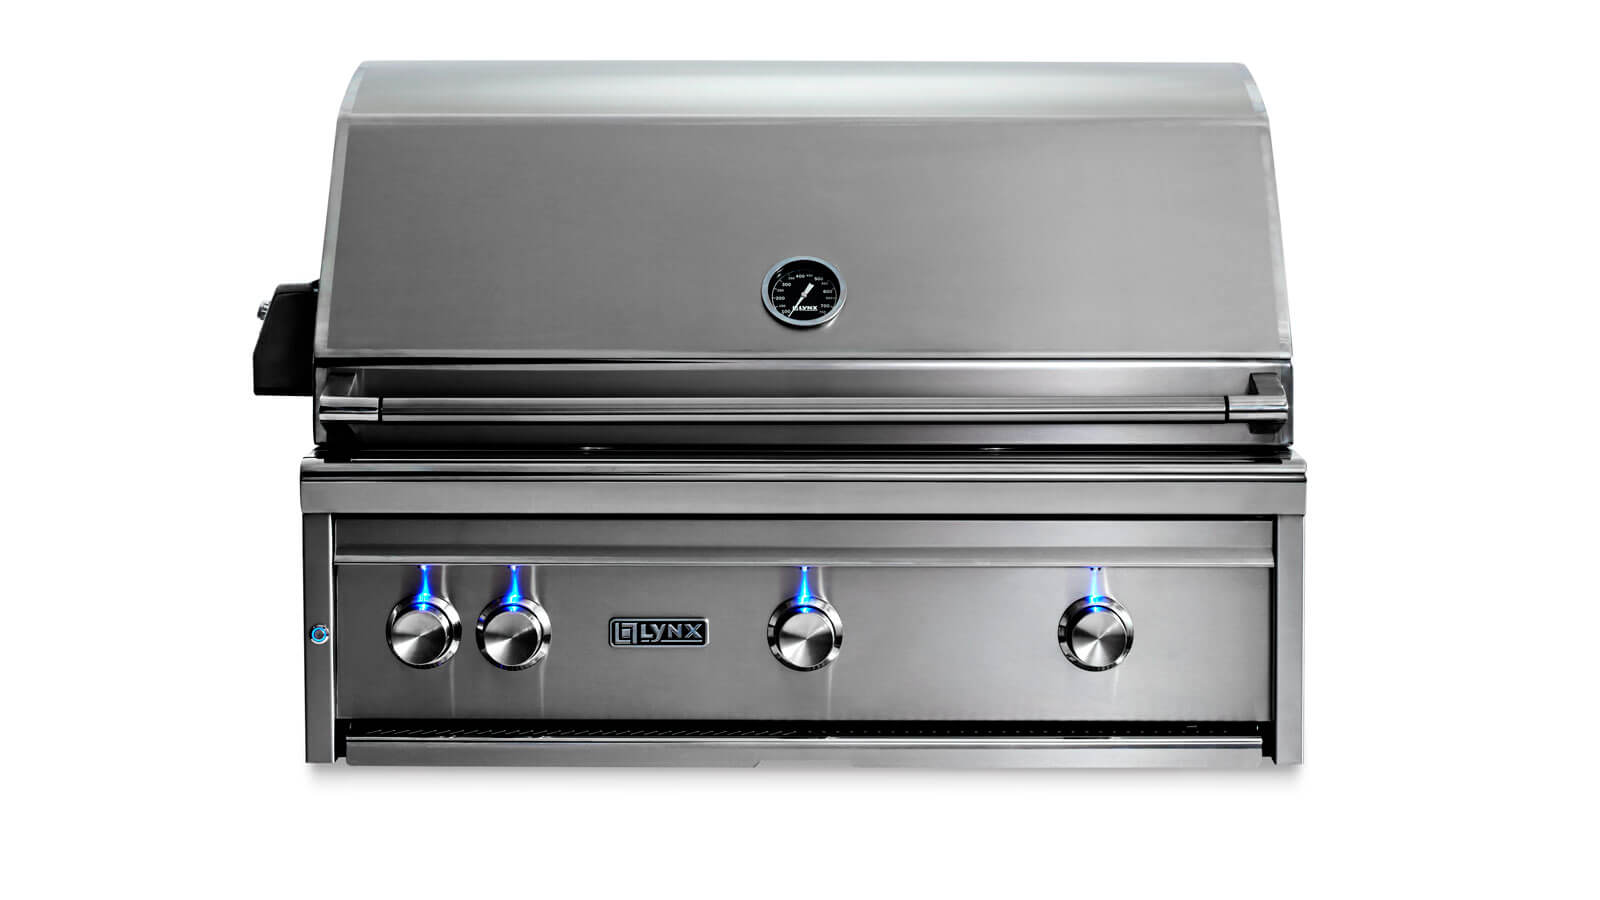 """Lynx Professional 36"""" Built-in Grill"""